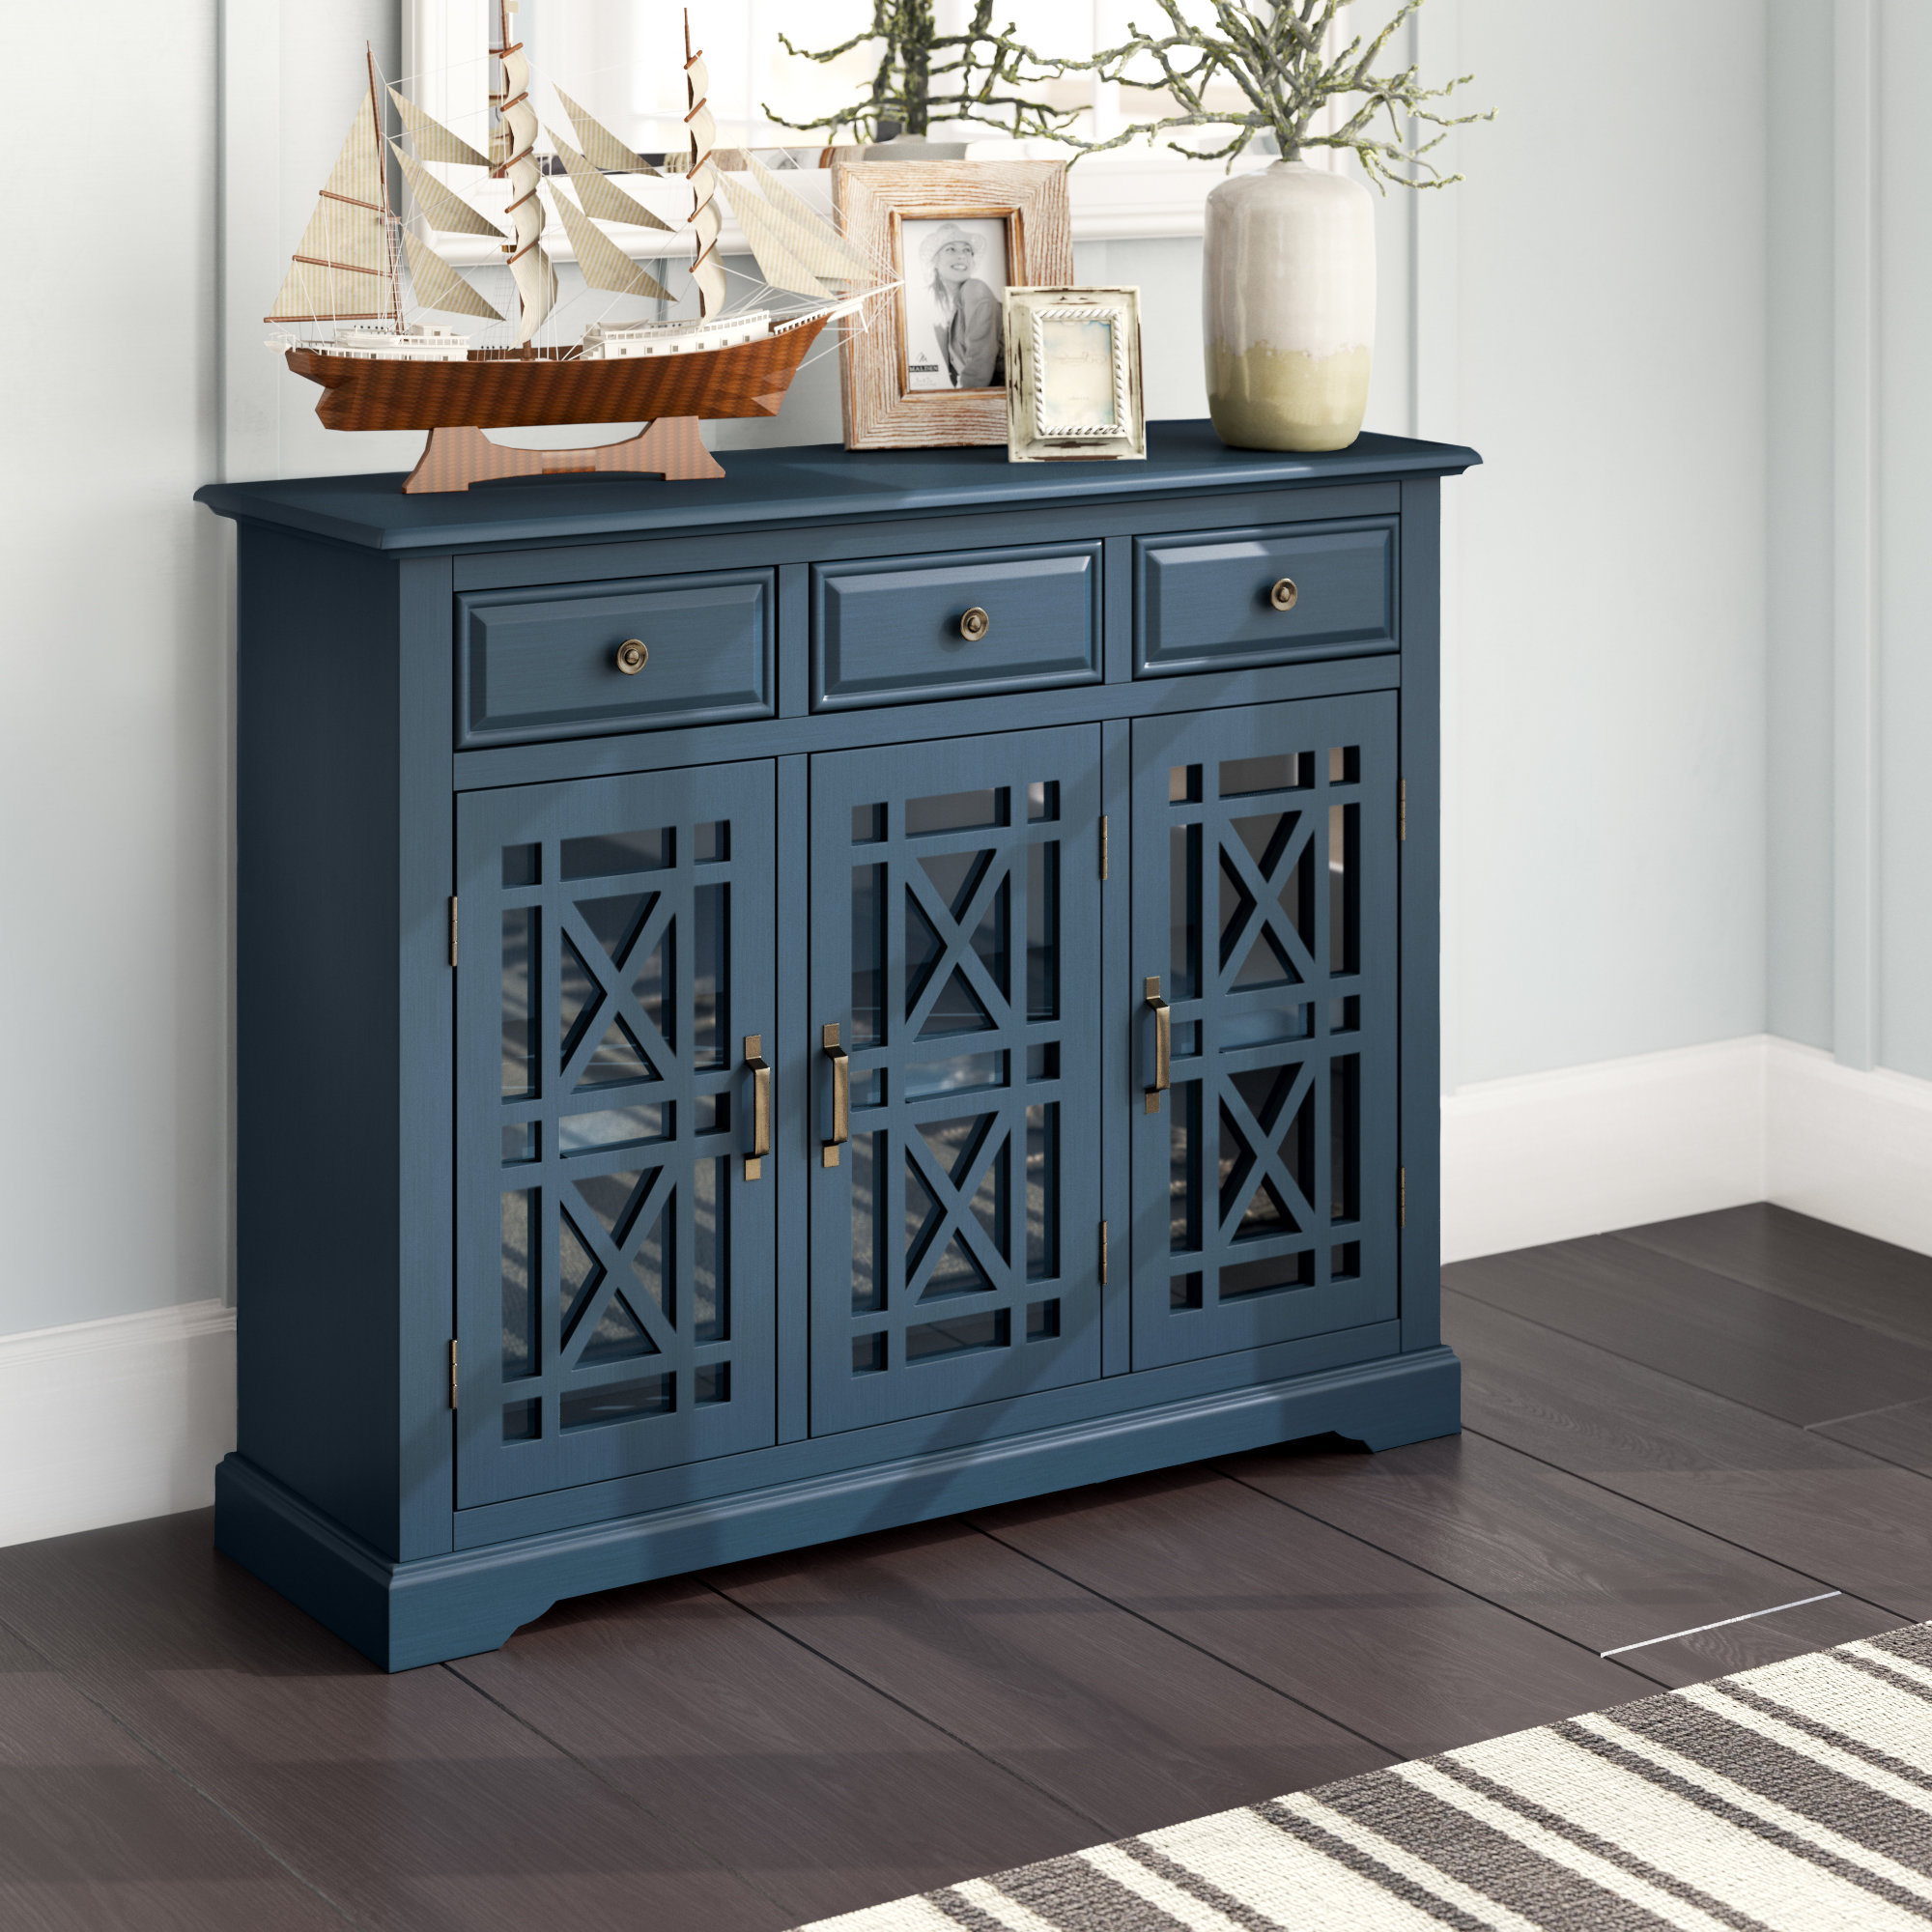 Sideboards & Buffet Tables You'll Love In 2019 | Wayfair In Deville Russelle Sideboards (View 15 of 20)